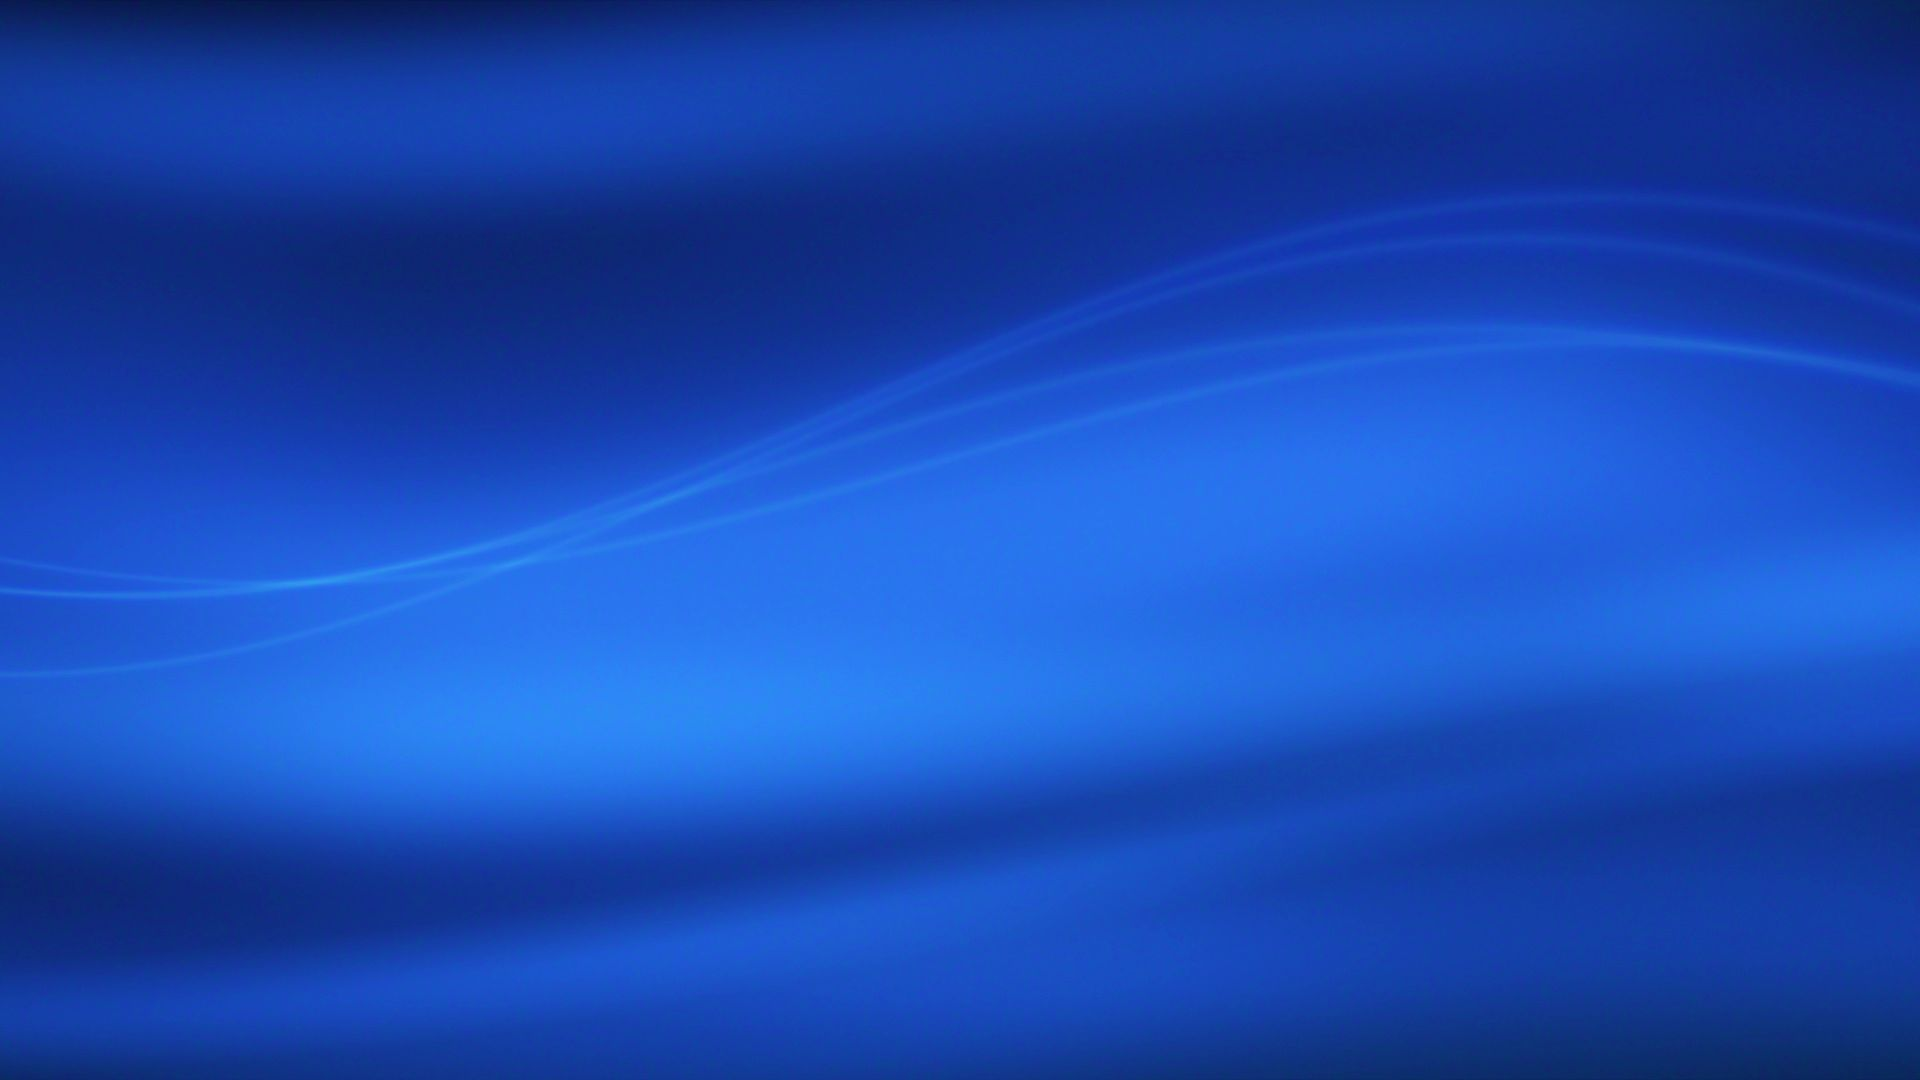 blue line wave background - photo #39